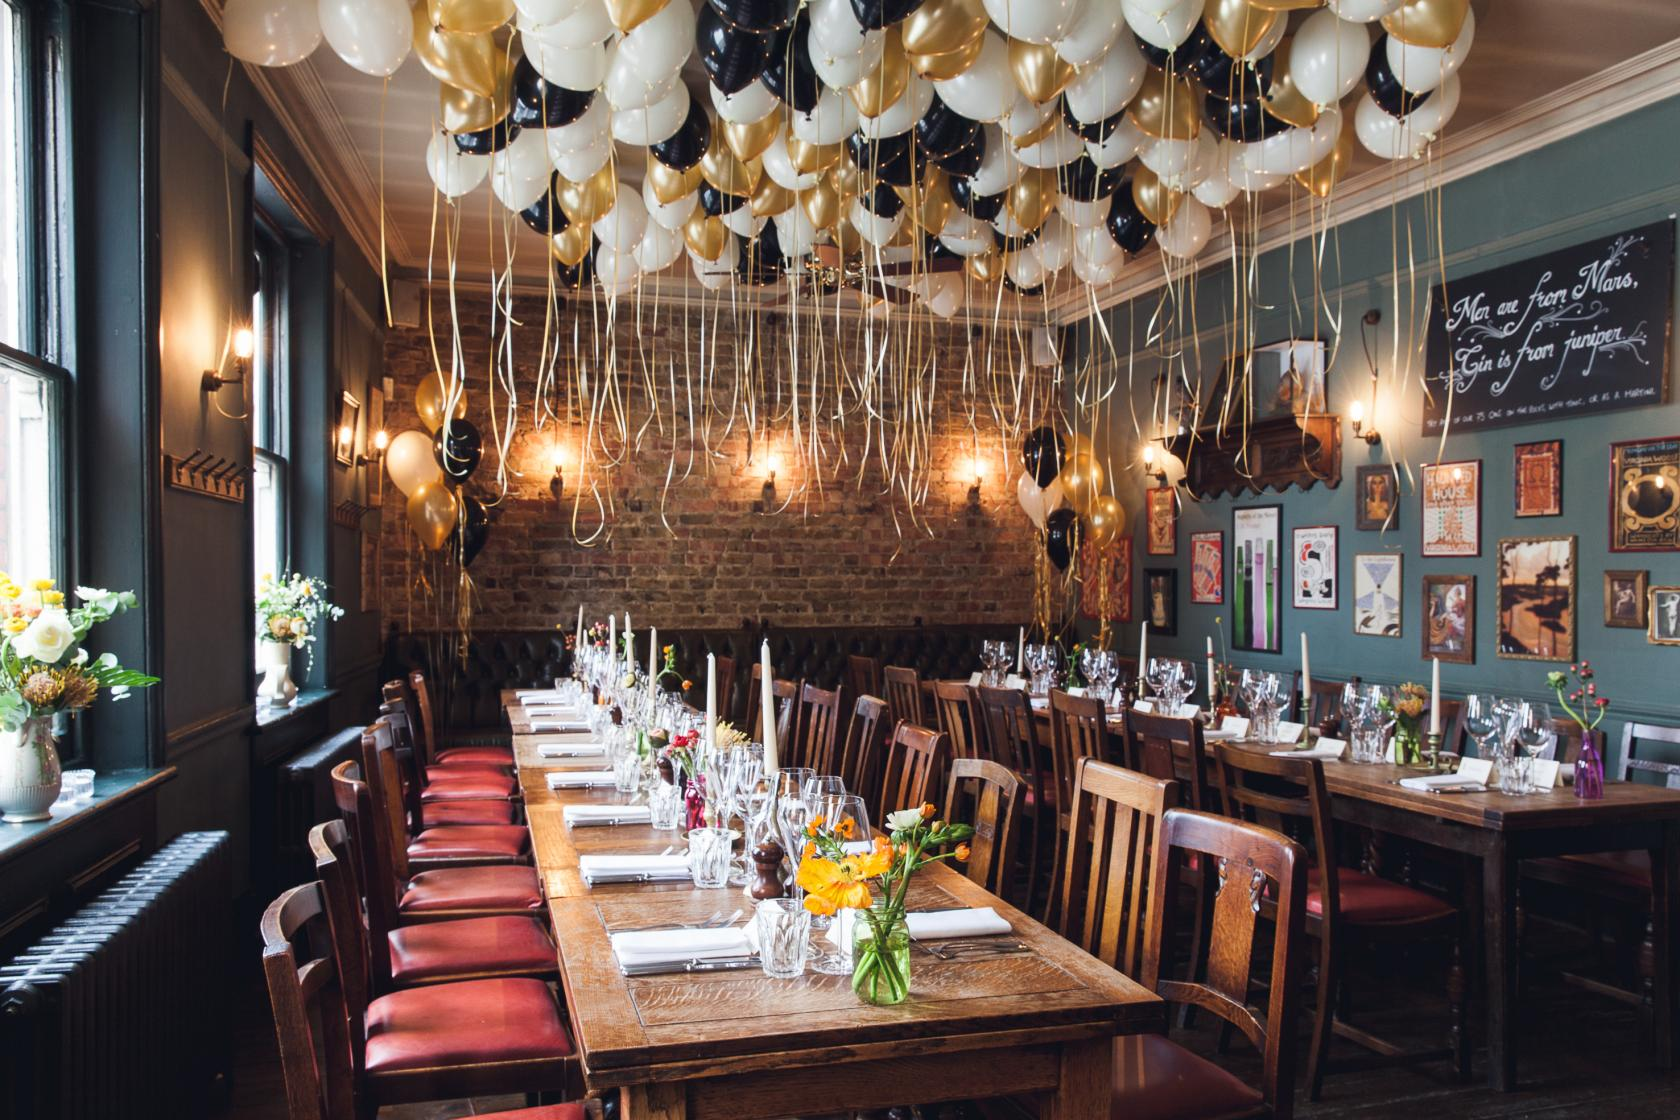 The Lady Ottoline boasts one of the cosiest private dining rooms in Bloomsbury.